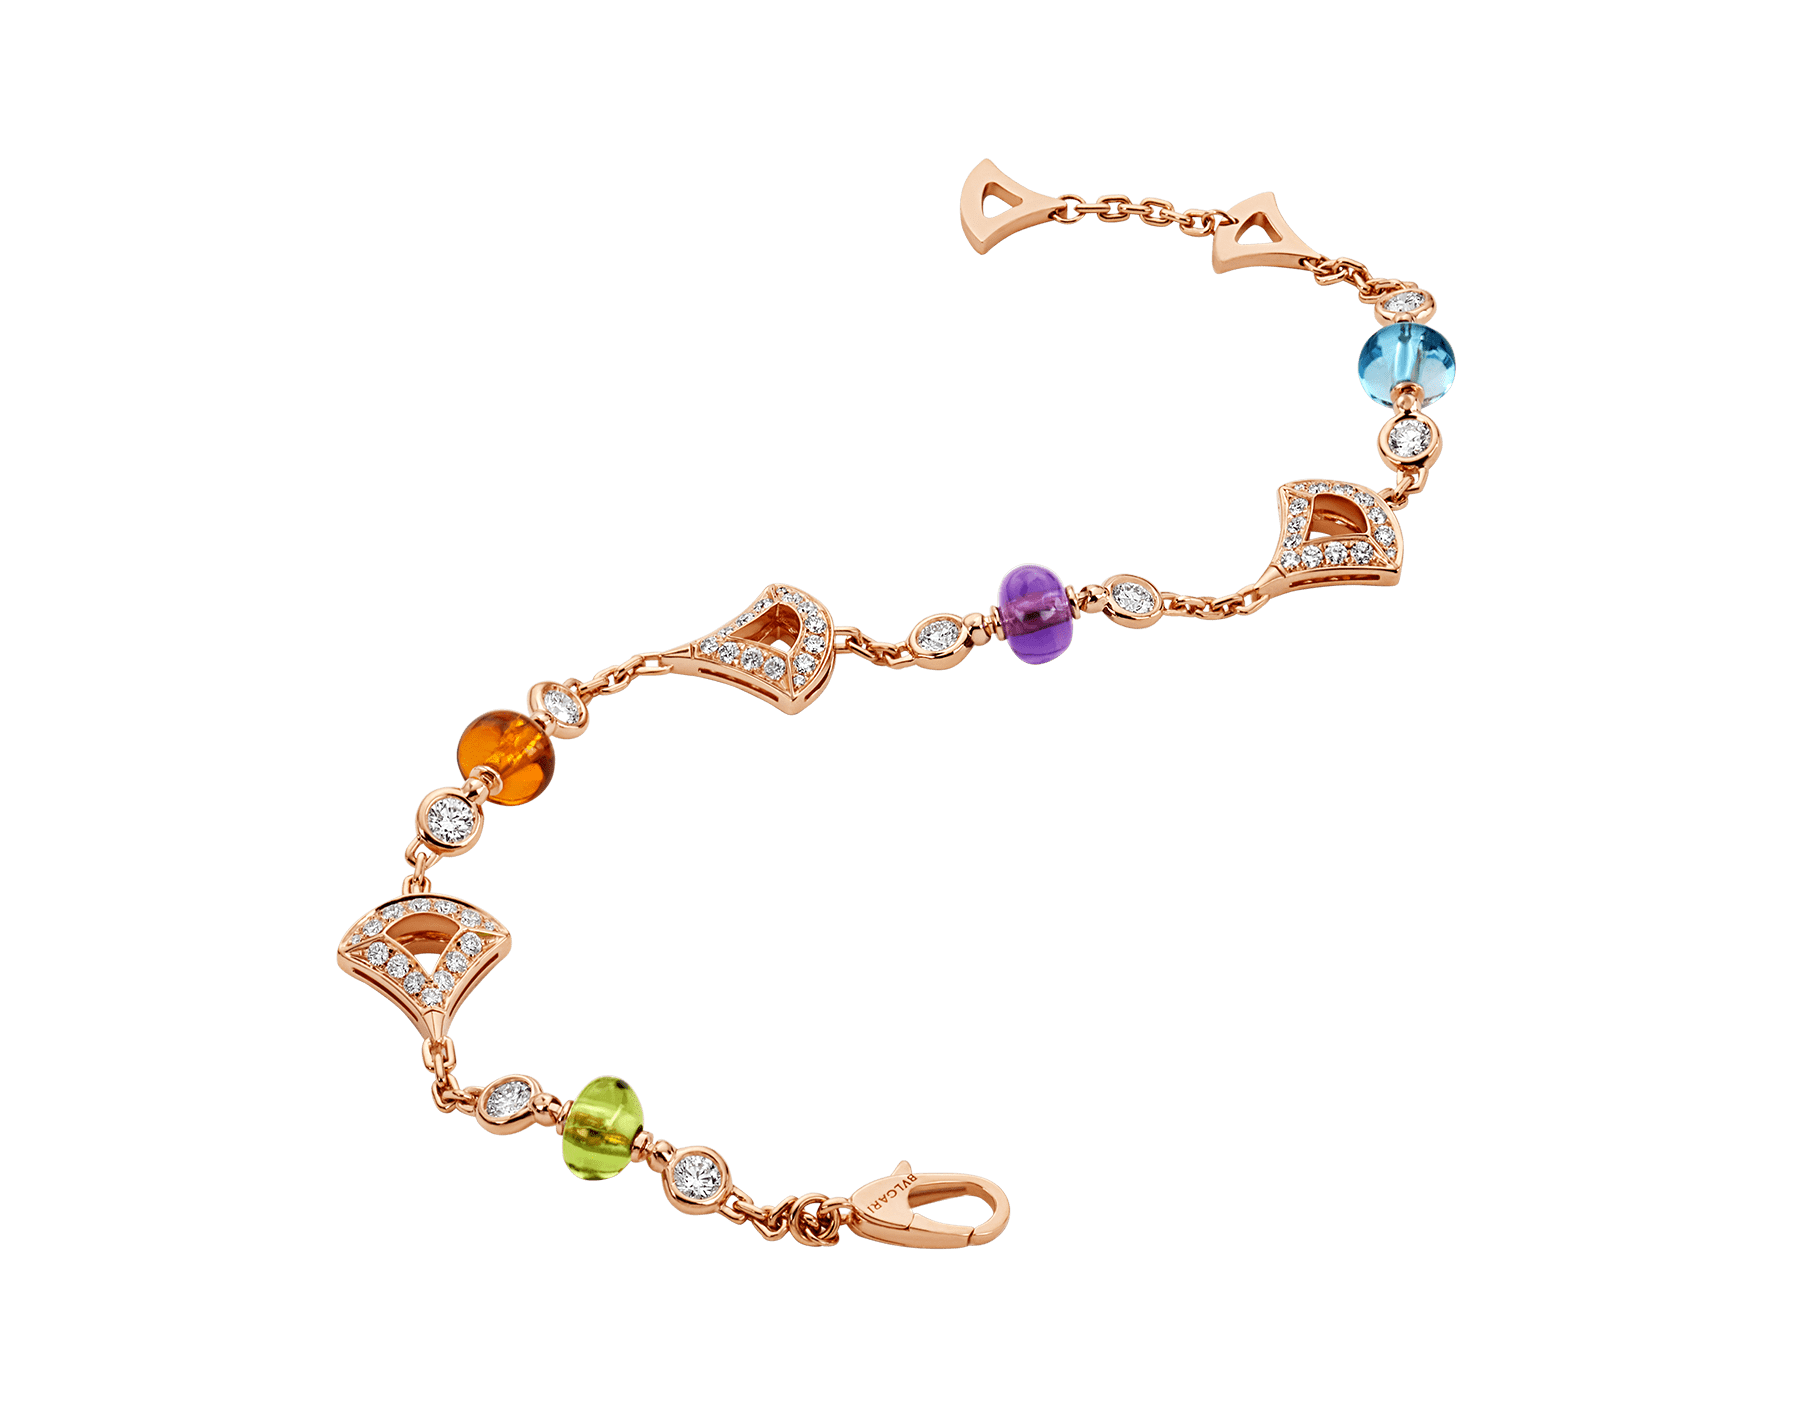 DIVAS' DREAM 18 kt rose gold bracelet set with coloured gemstones and pavé diamonds BR858399 image 2